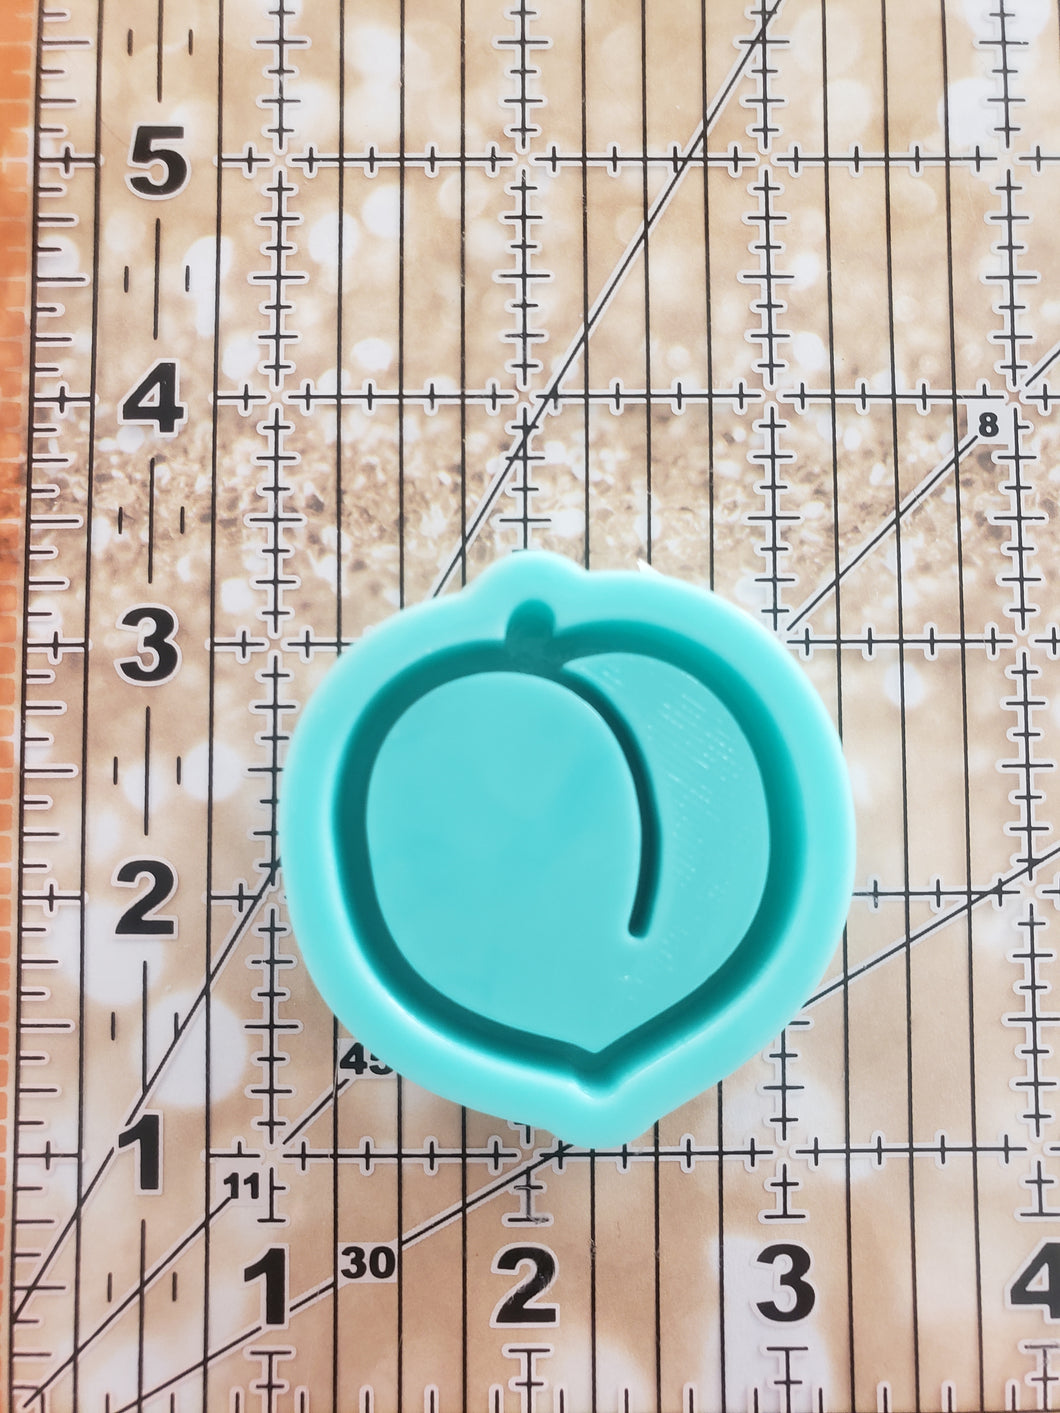 Peach Grippy Shaker Mold